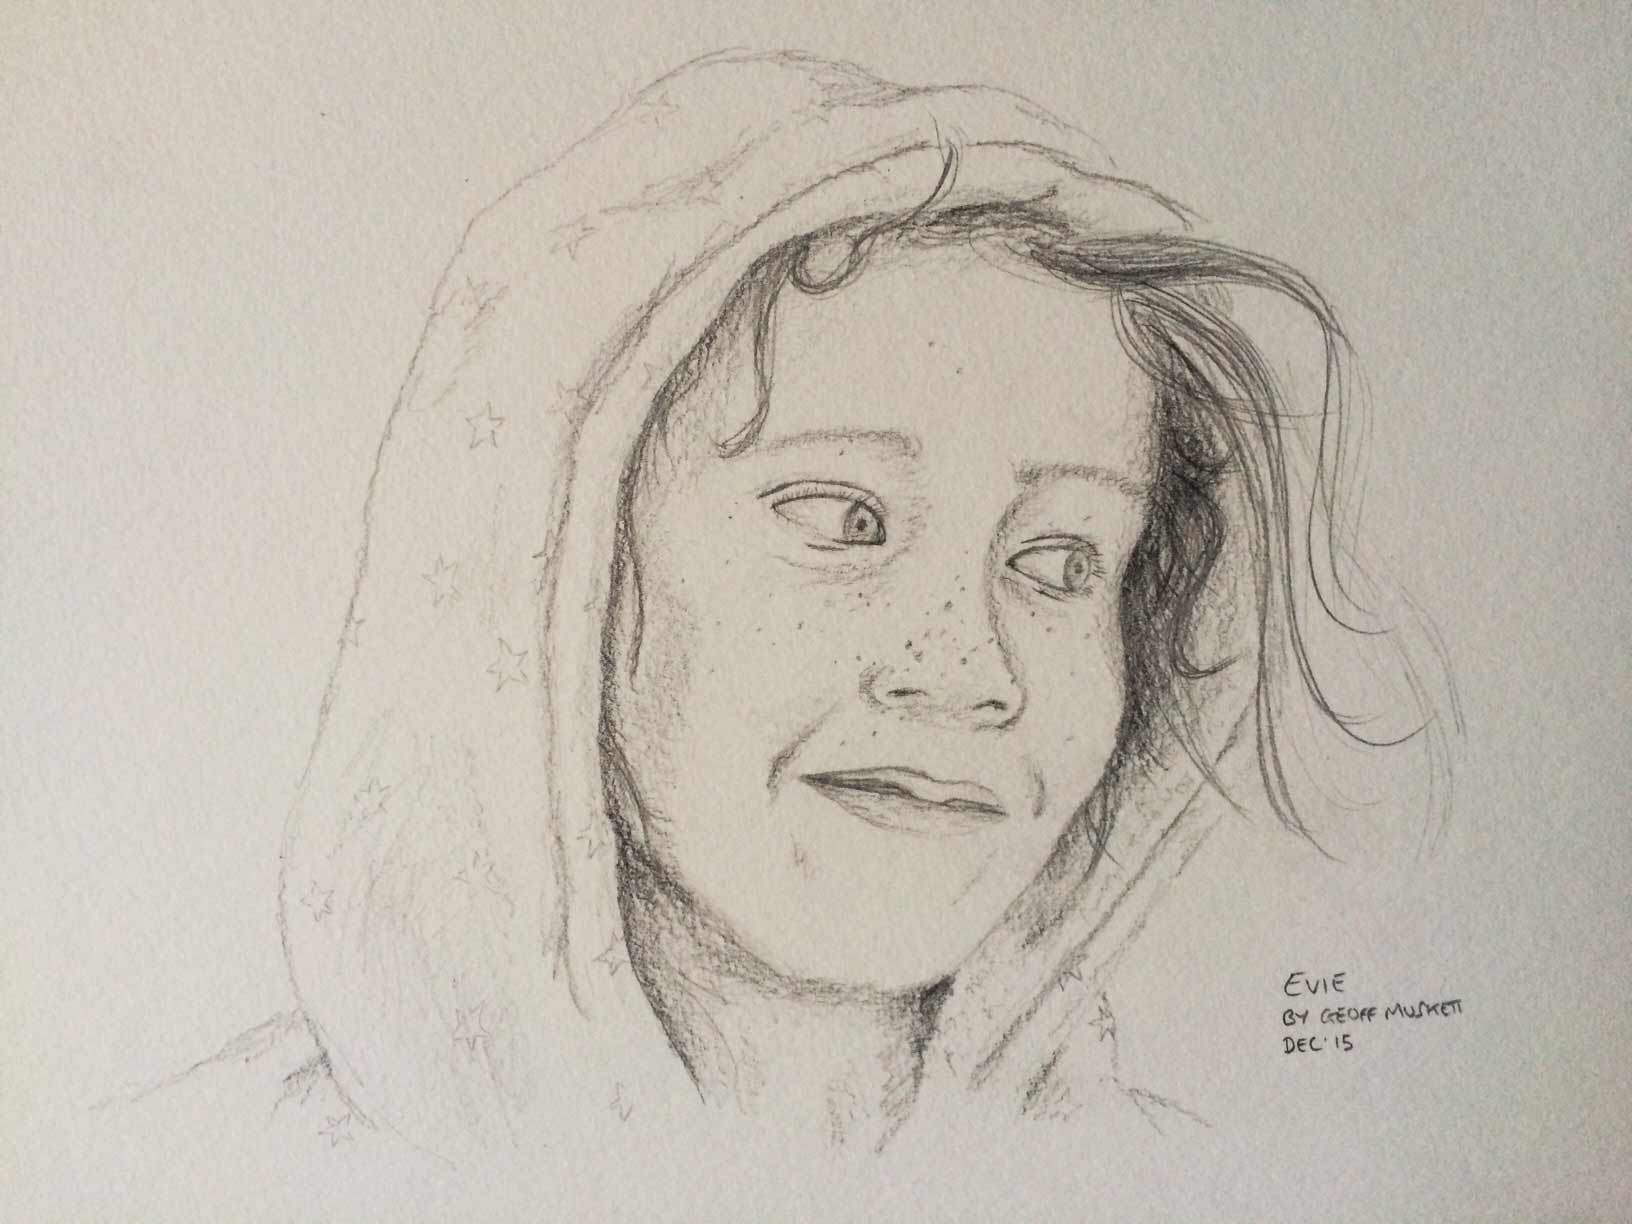 Pencil sketch portrait by Geoff Muskett